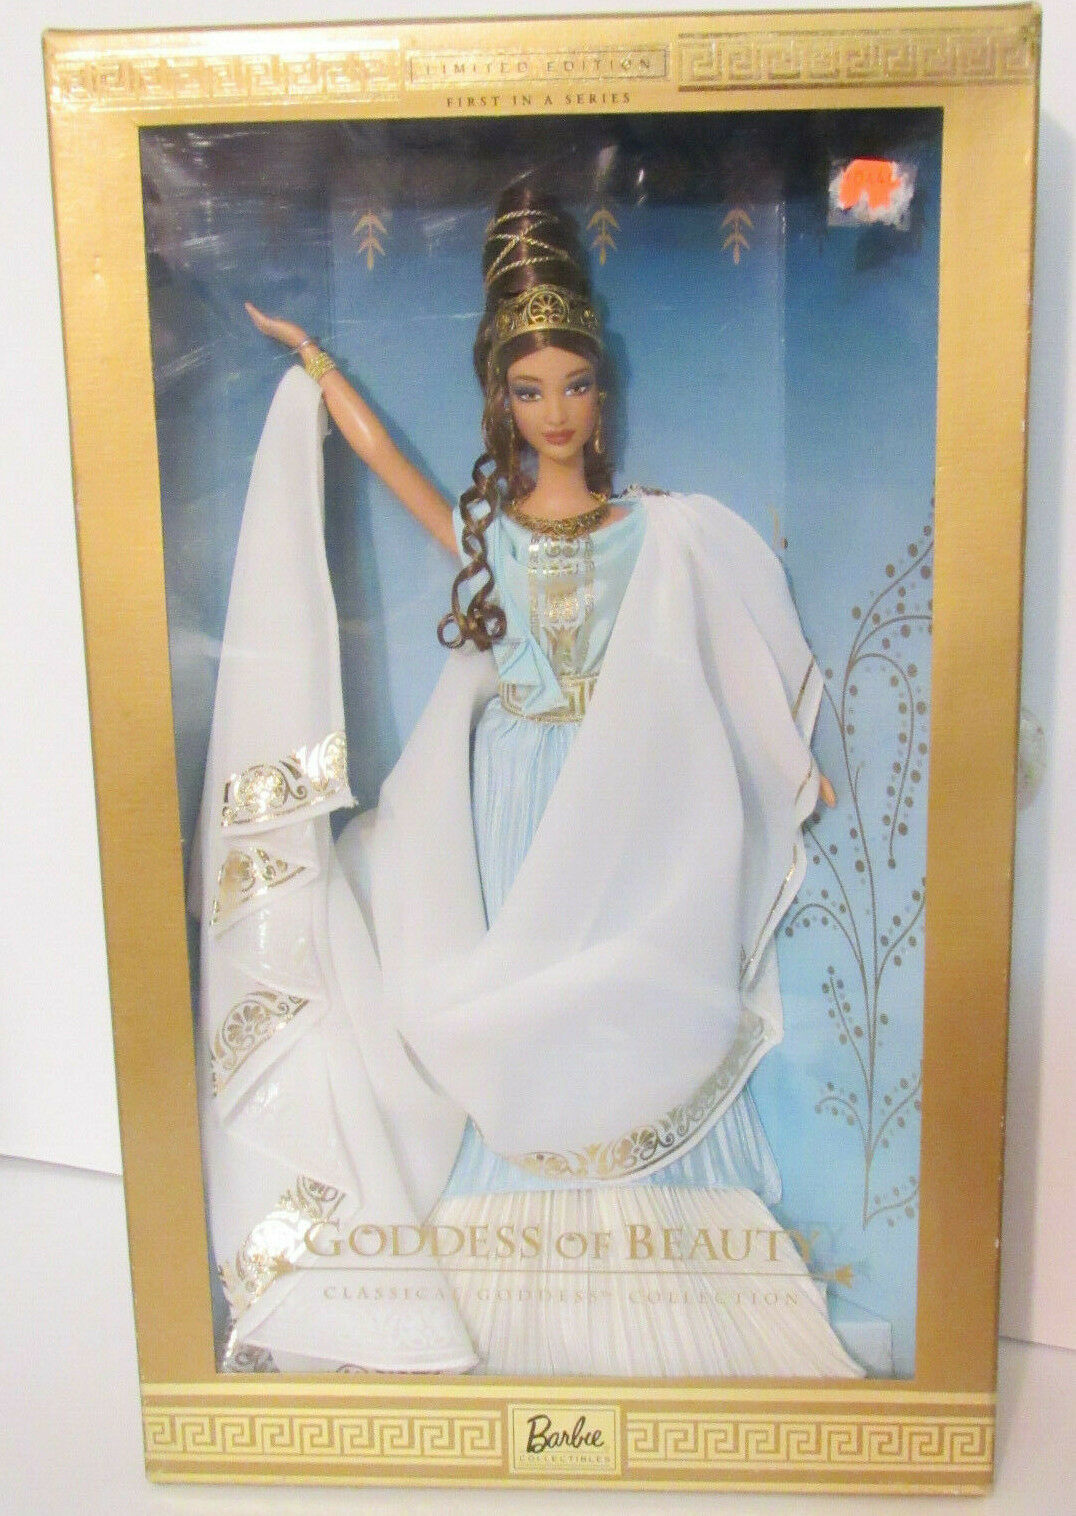 VHTF NRFB Goddess of Beauty Barbie Doll Classical Greek LTD ED 2000